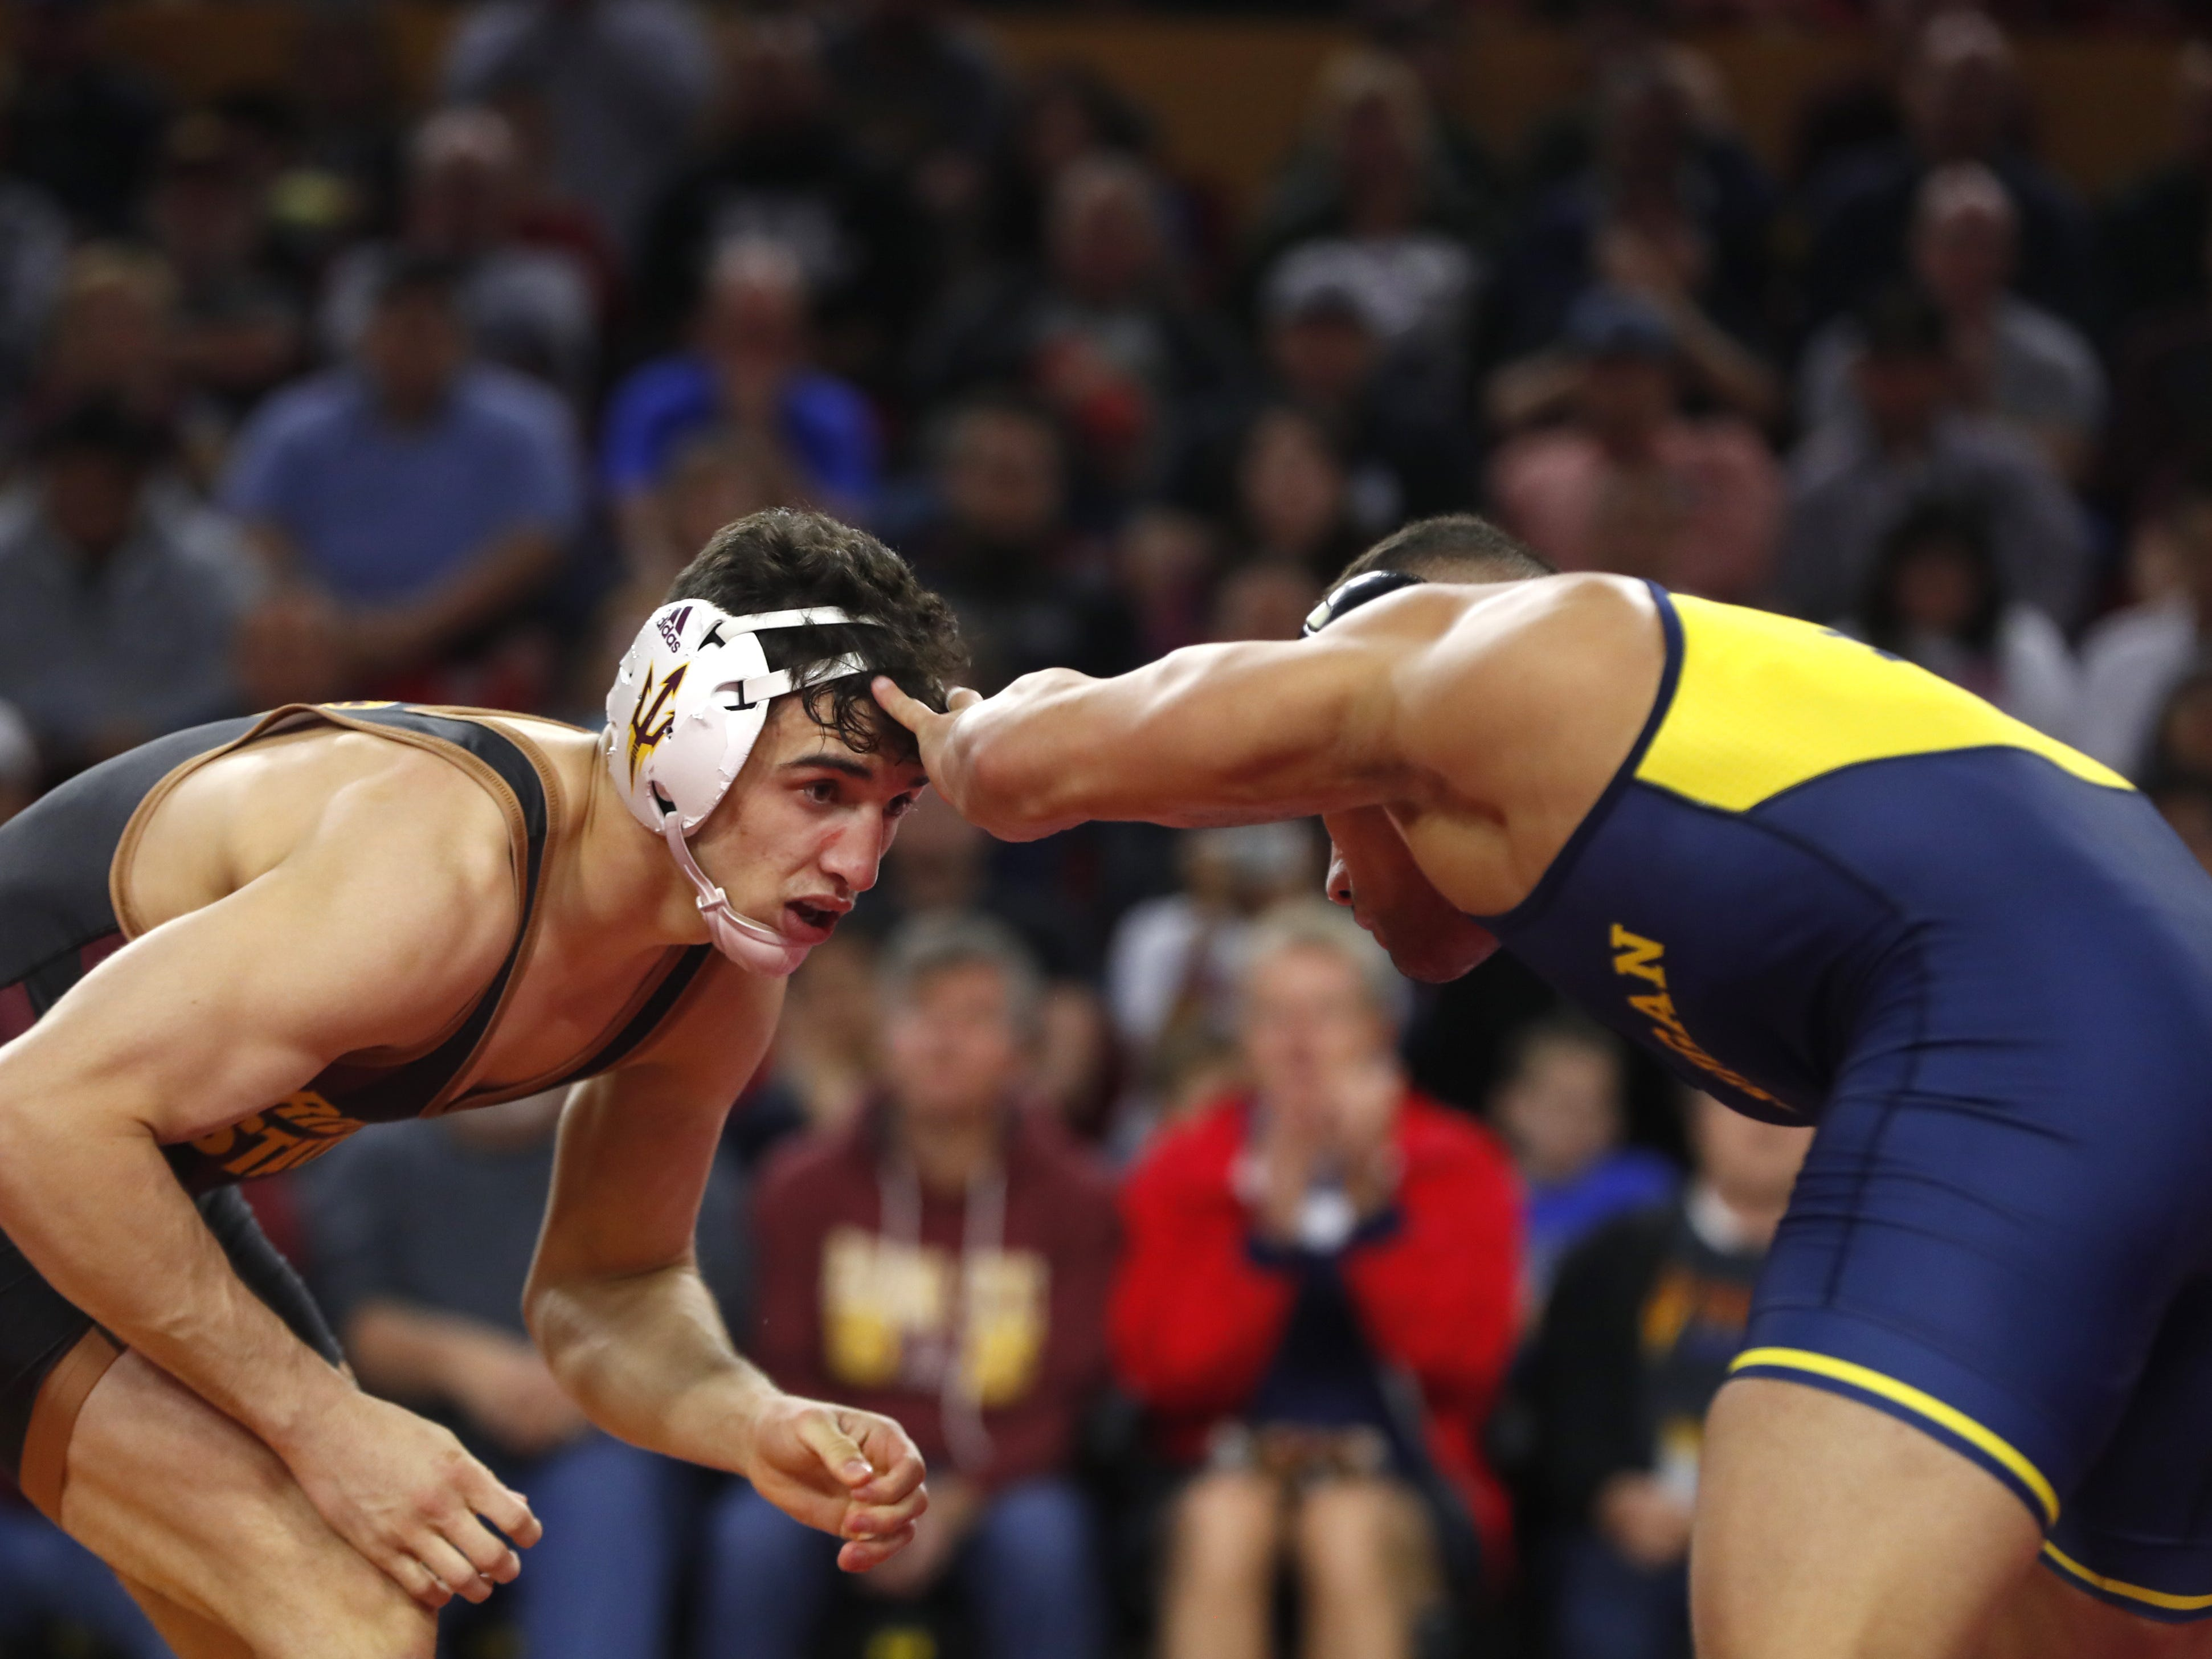 ASU's Christian Pagdilao (in black) wrestles Michigan's Alec Pantaleo (in yellow and blue) during a 157 lbs match at Wells Fargo Arena in Tempe, Ariz. on January 5, 2019.